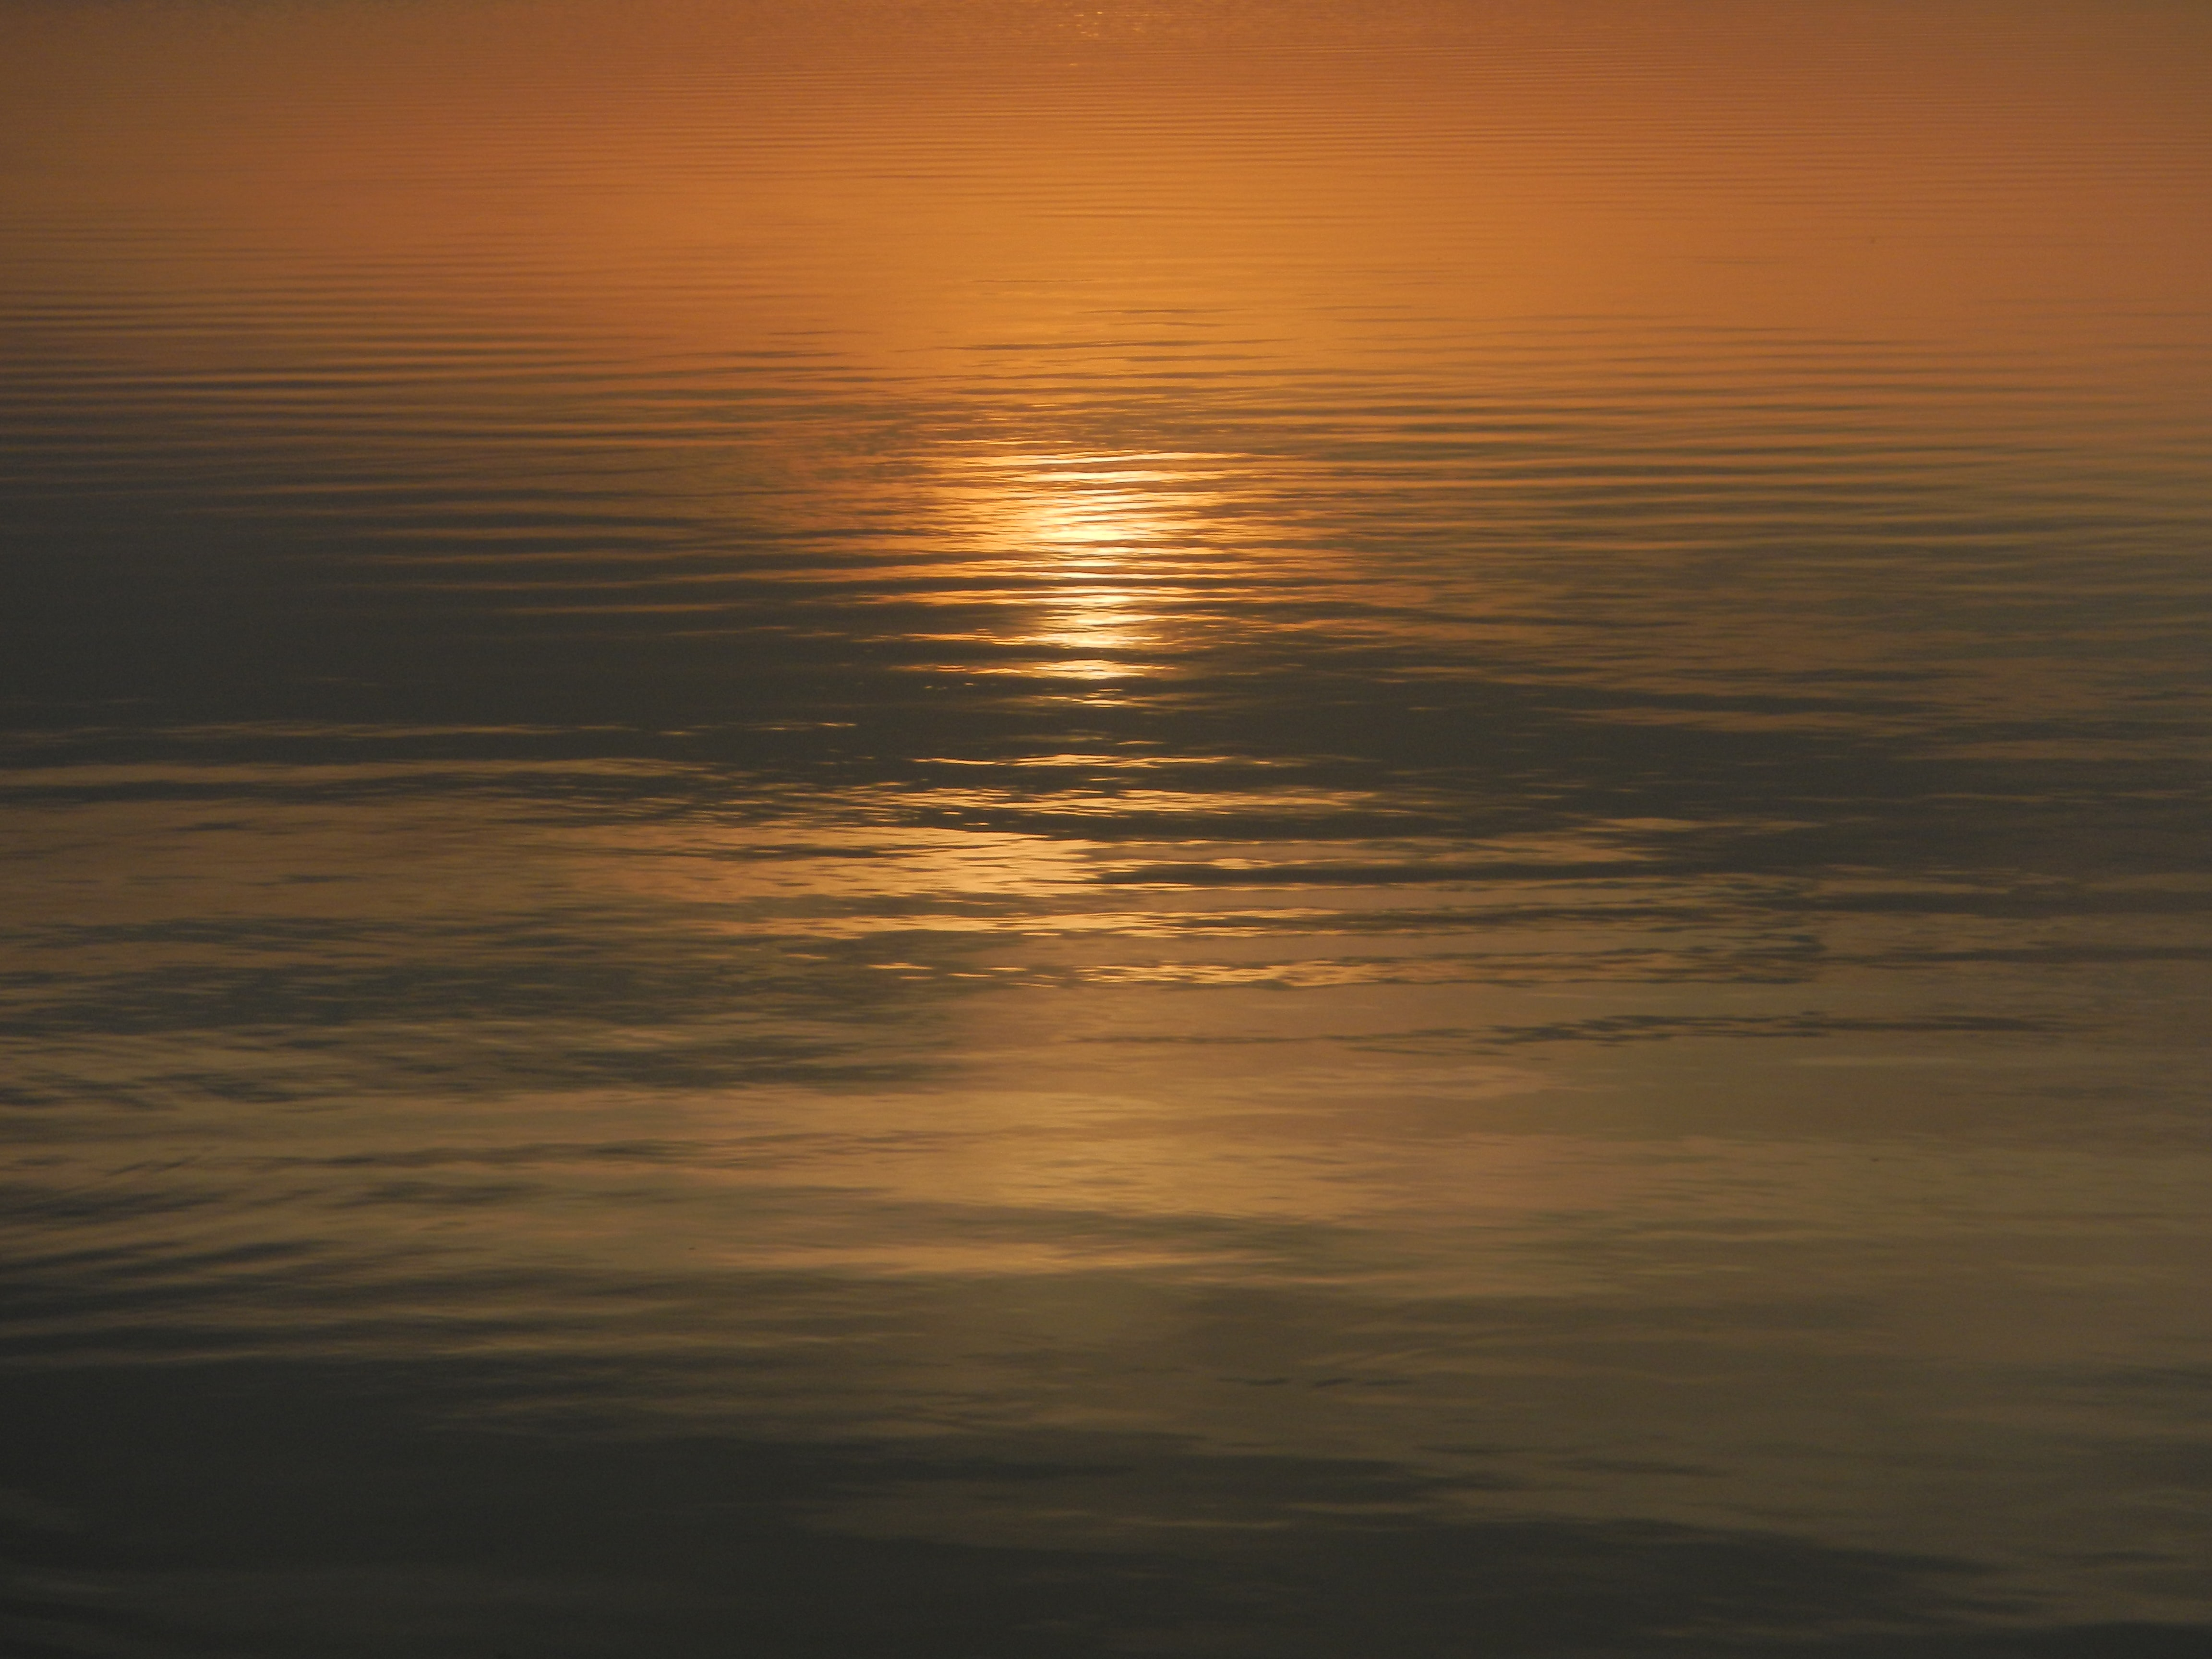 reflection of sun on body of water